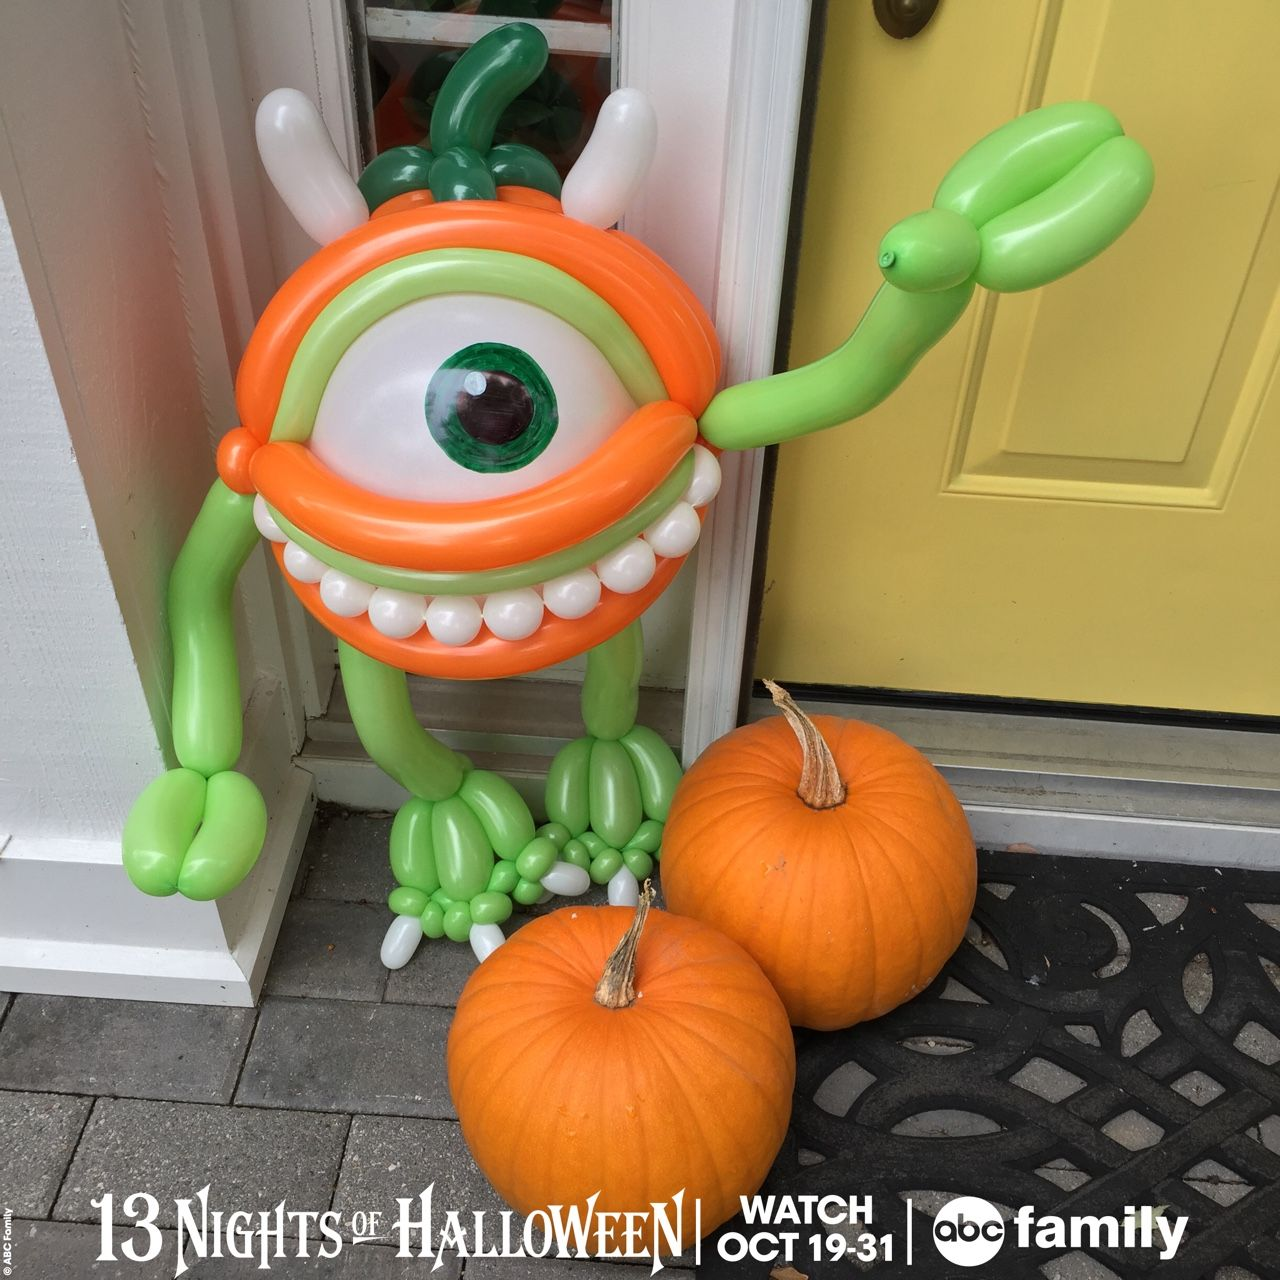 abc familys 13 nights of halloween starts tonight with disney pixars monsters inc at on abc family check out this balloon i made for abc family of mike - Halloween Balloon Animals